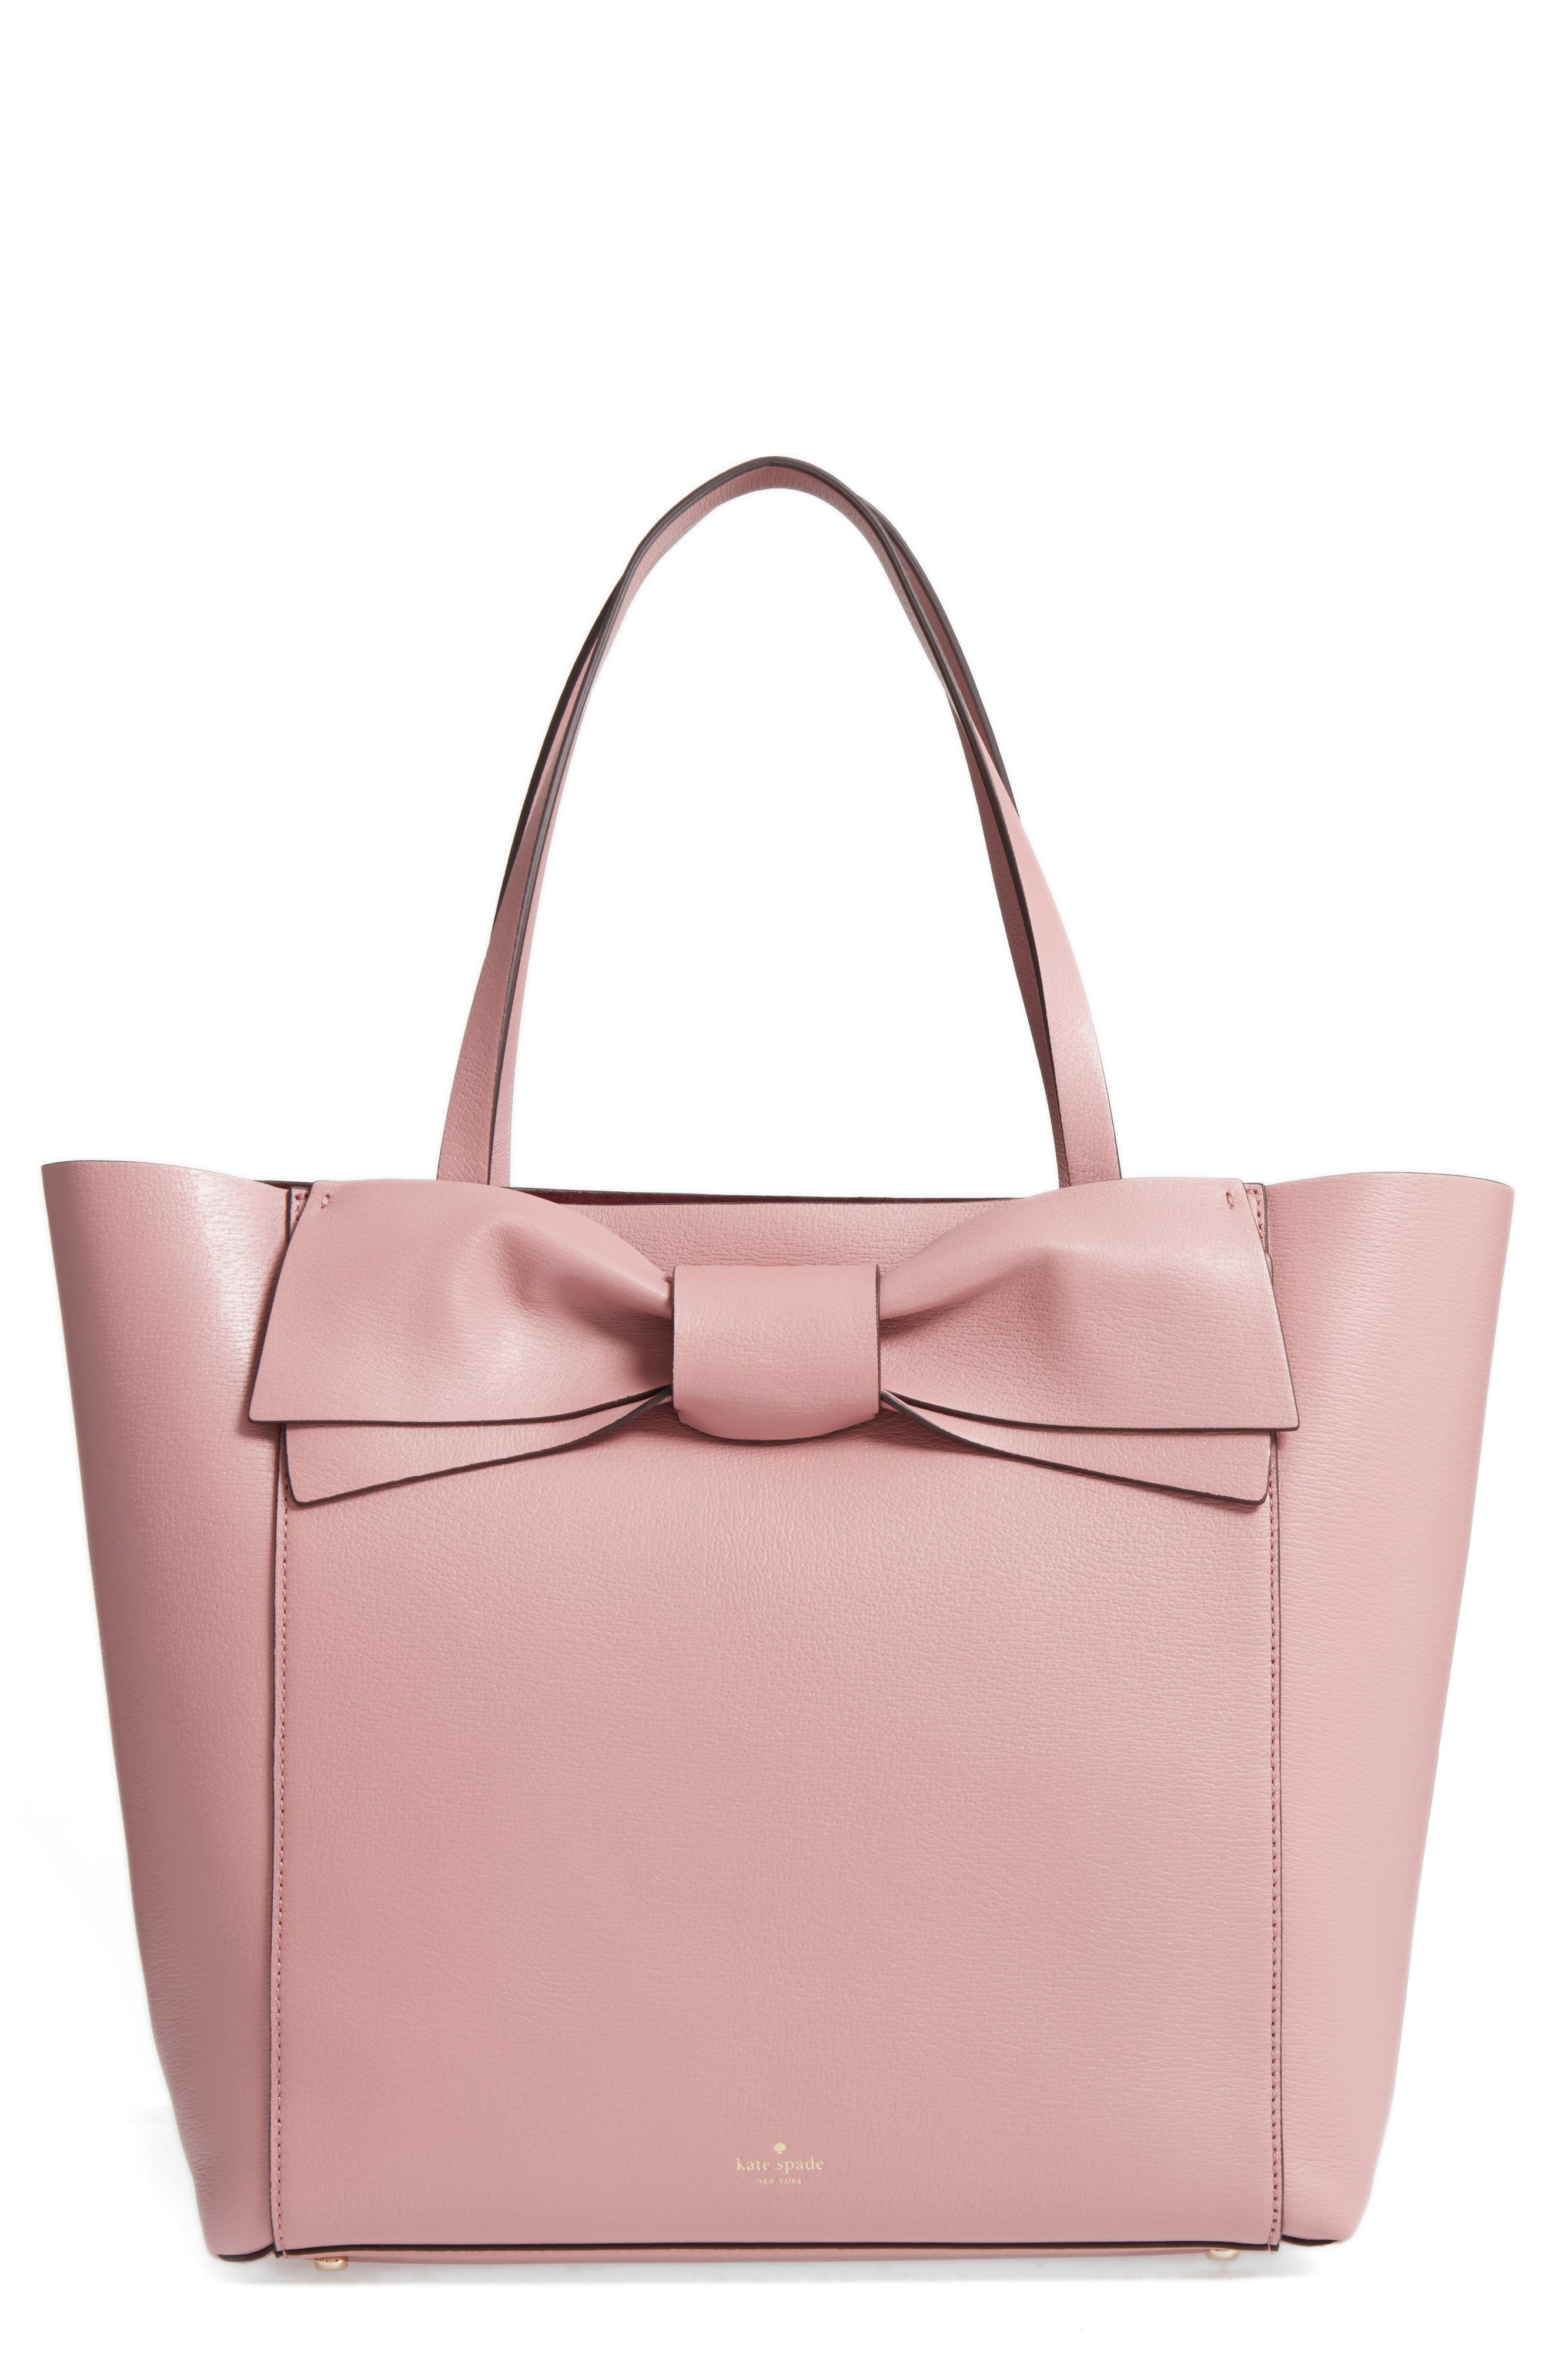 Alternate Image 1 Selected - kate spade new york olive drive - savannah leather tote